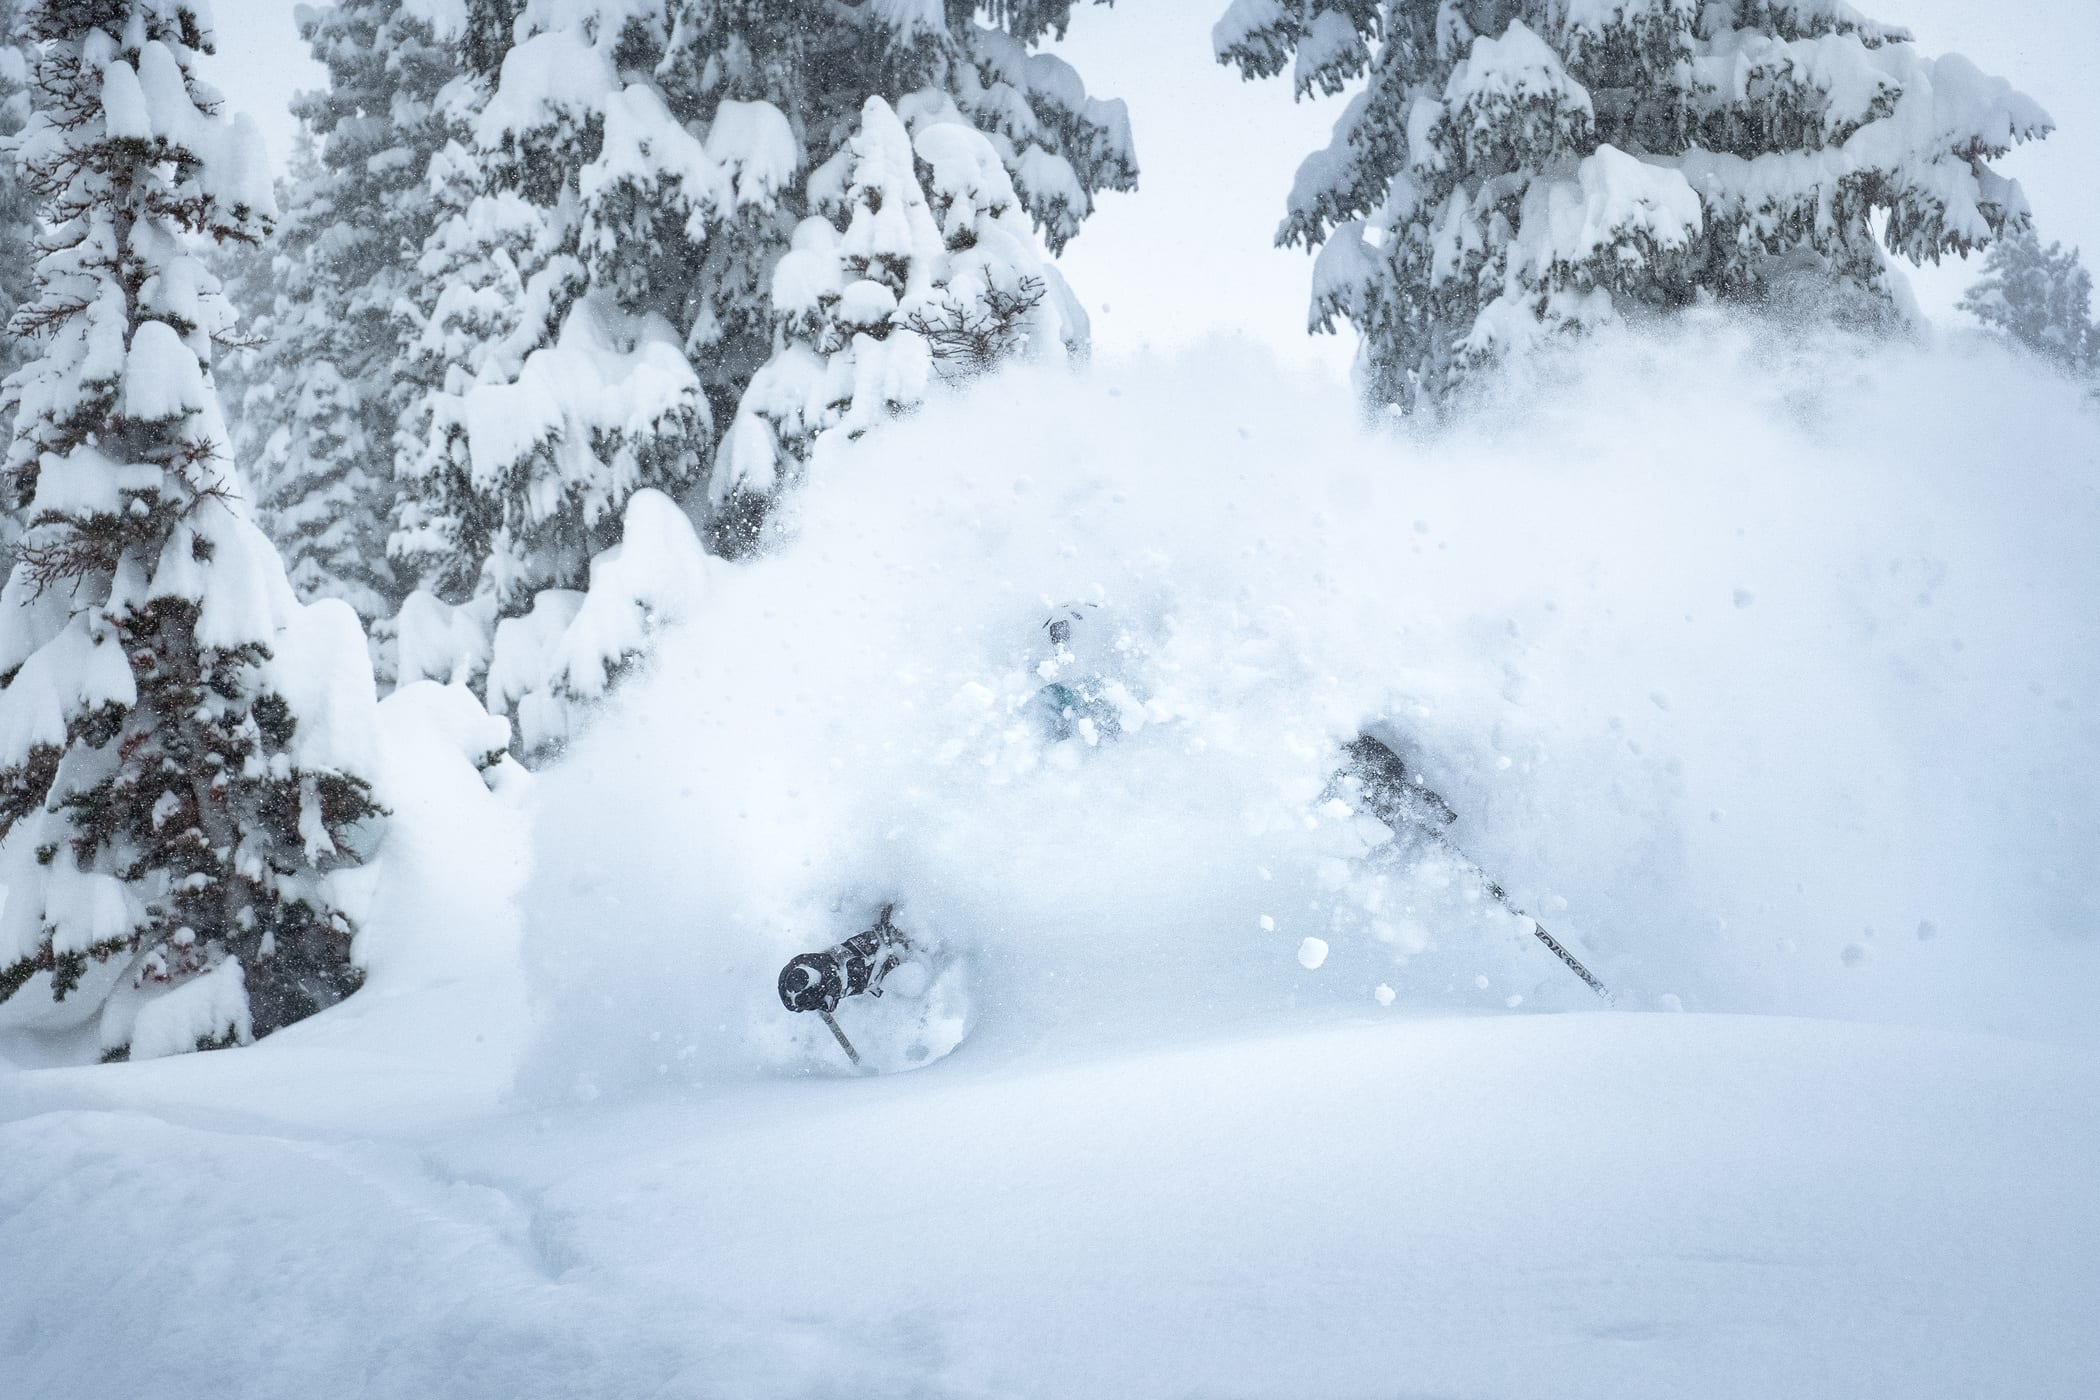 Skier skiing deep fresh powder snow